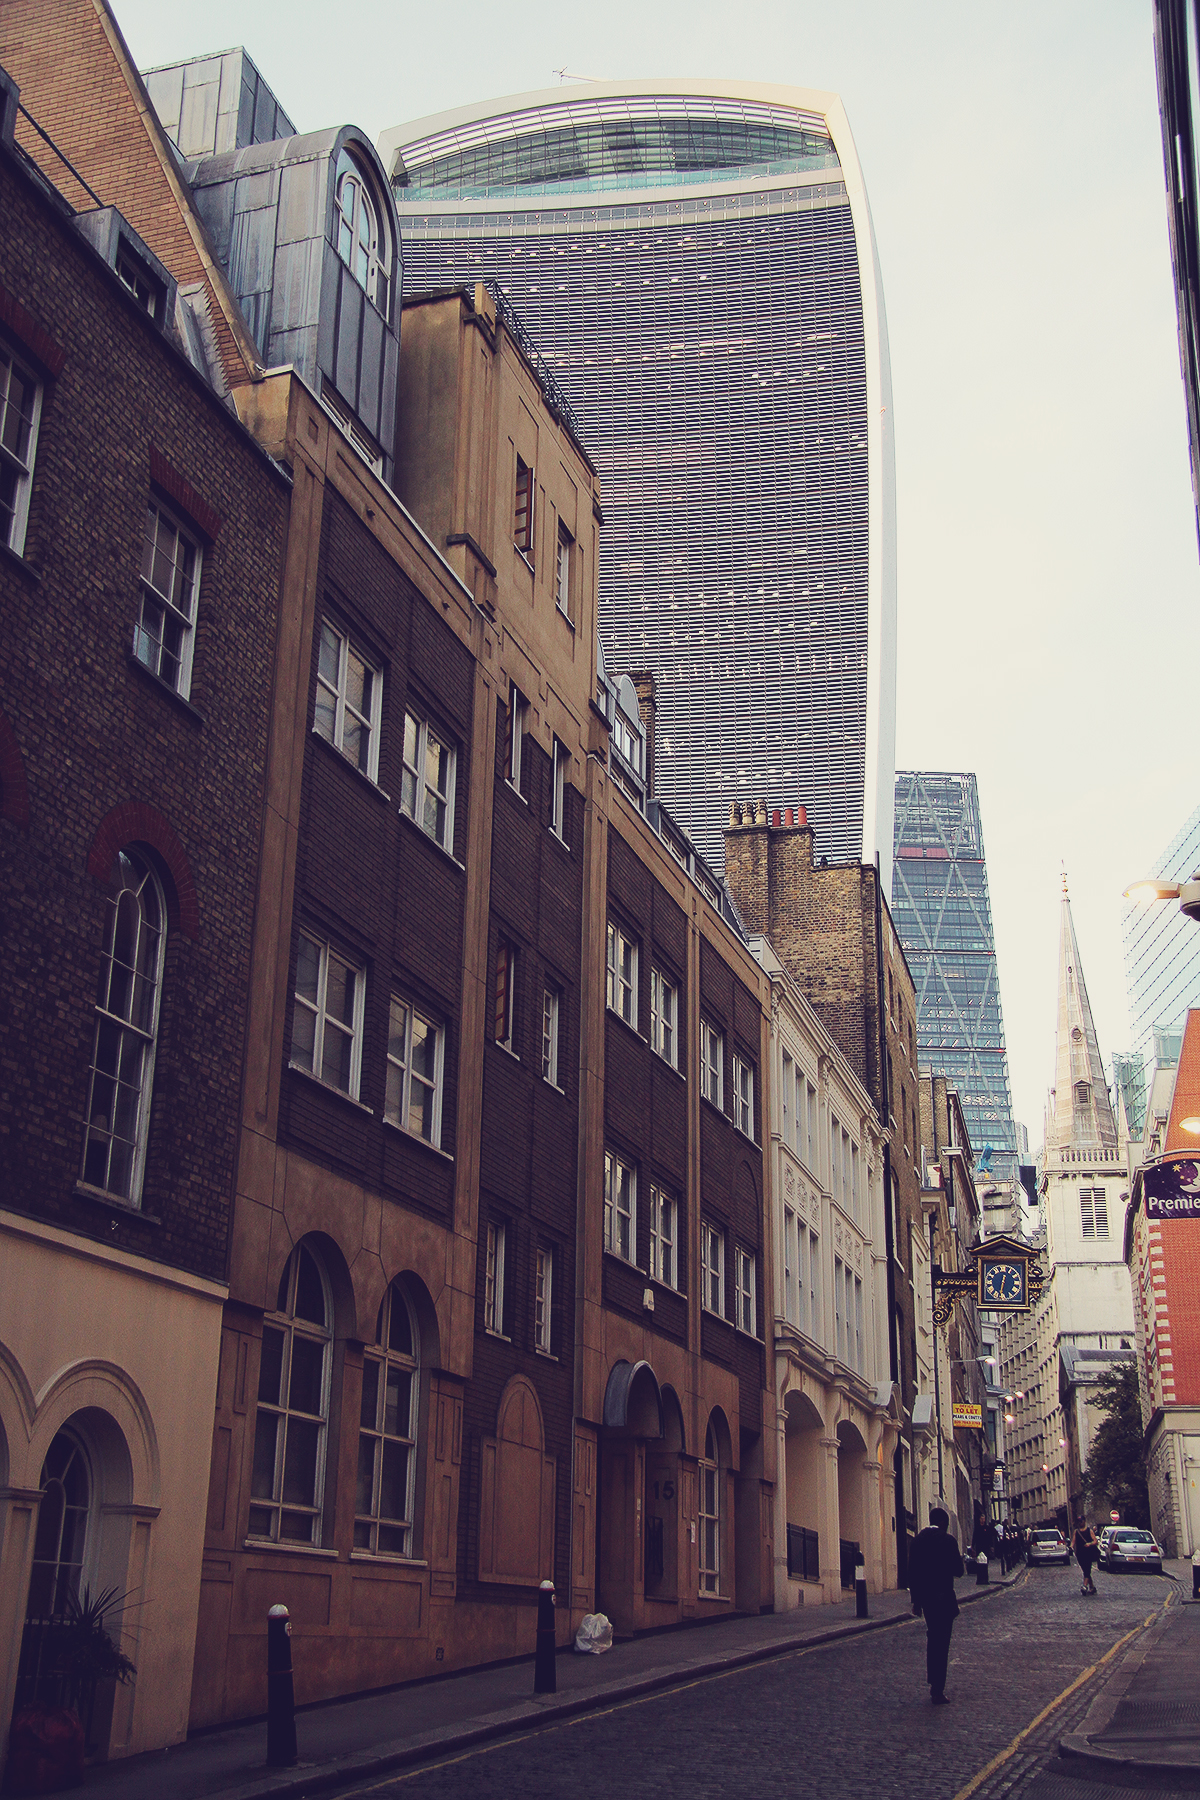 london-sky-garden-view-from-the-street